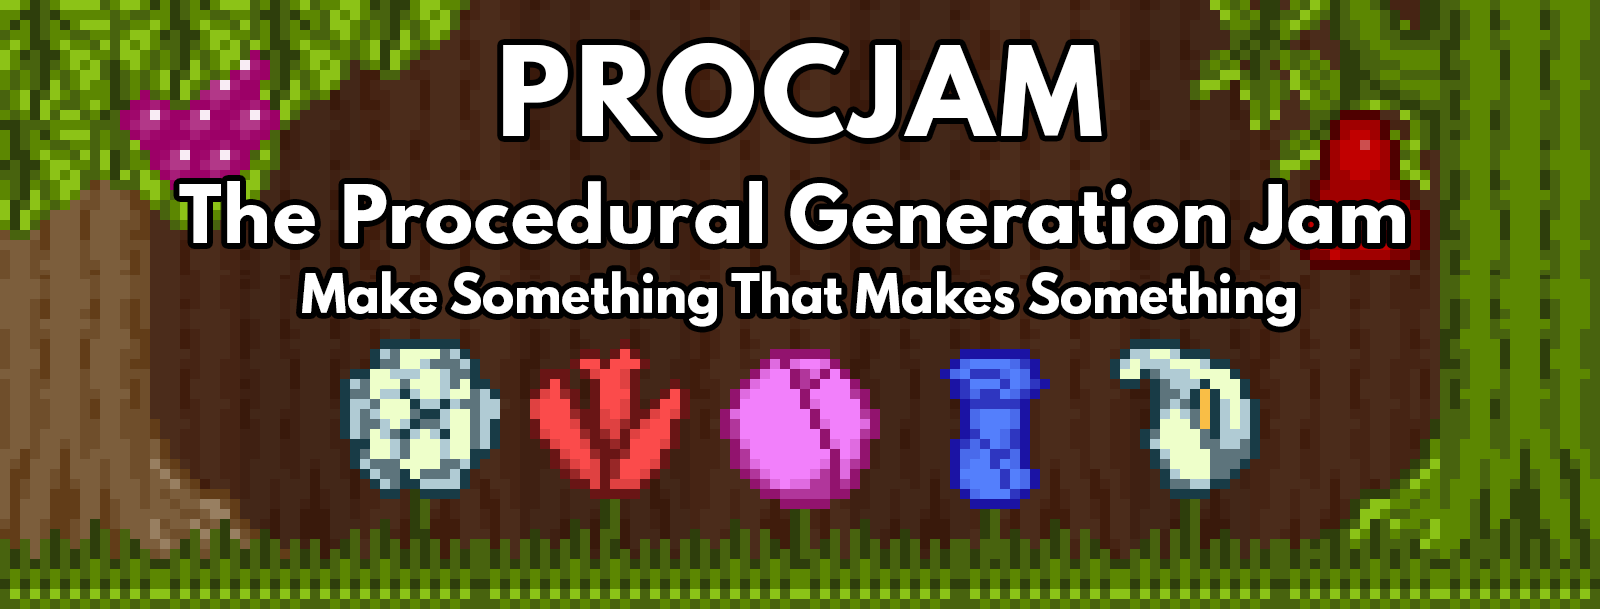 PROCJAM - The Procedural Generation Jam - itch io